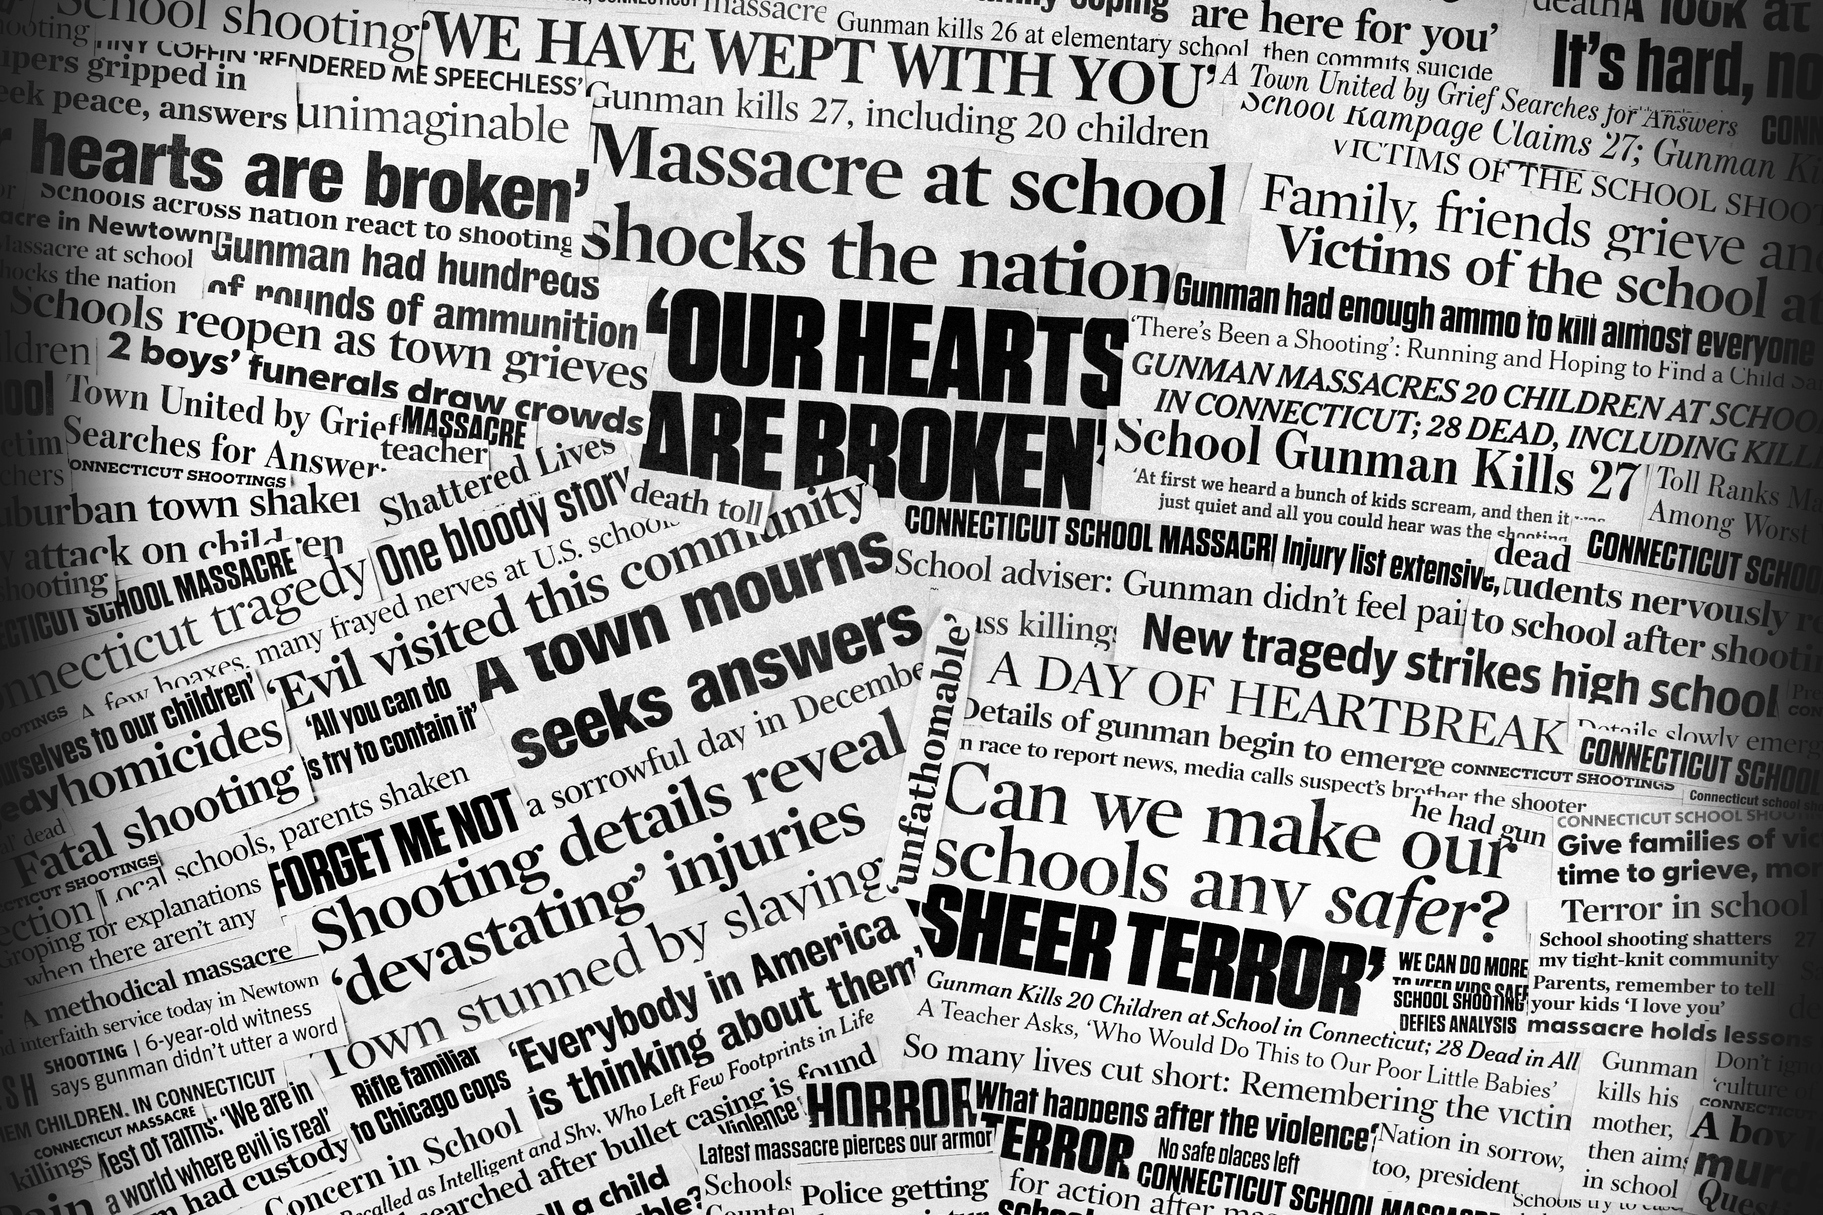 A collage made up of newspaper clippings pertaining to the December 2012 school shooting massacre in Newtown, Conn. (Allkindza/Getty Images)